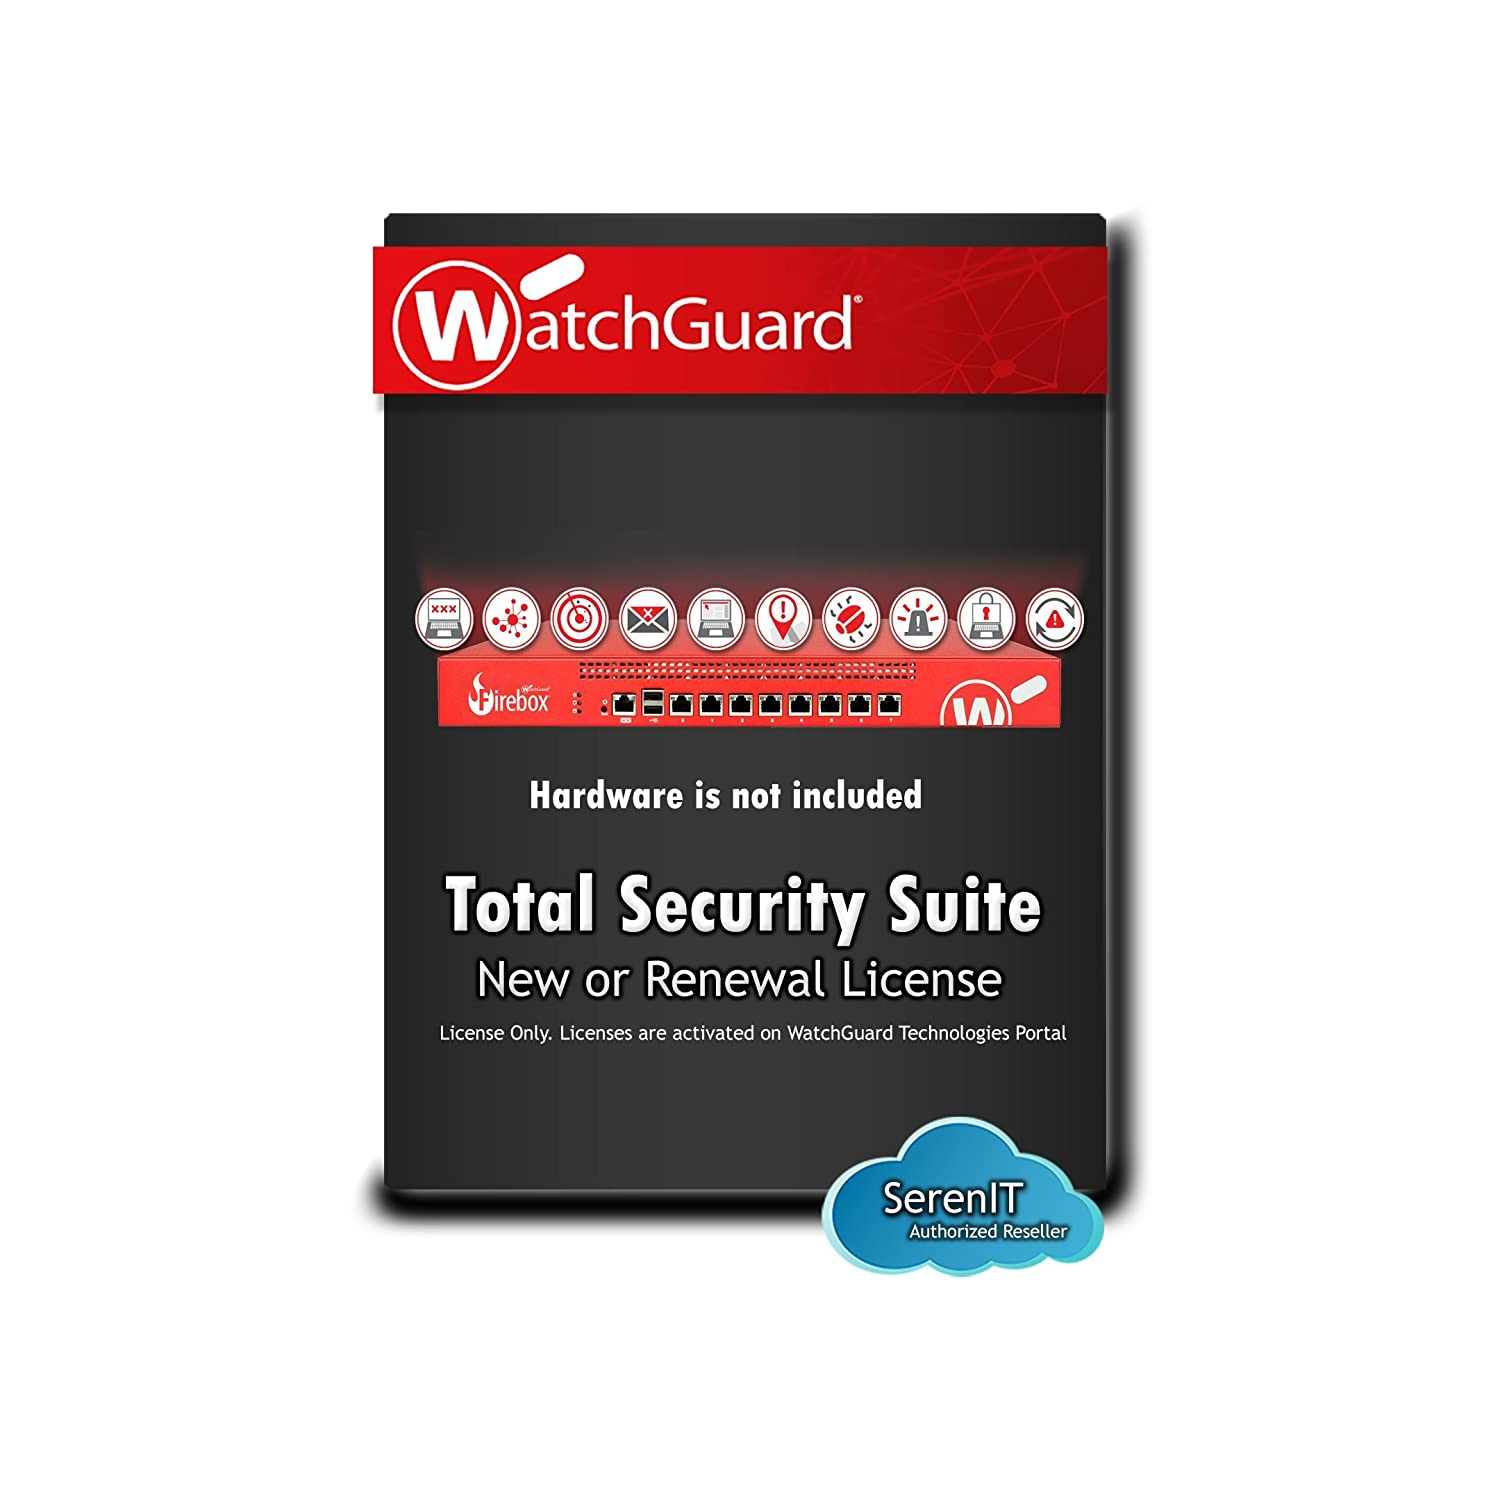 Watchguard 2yr renewal firebox x50 wg017184